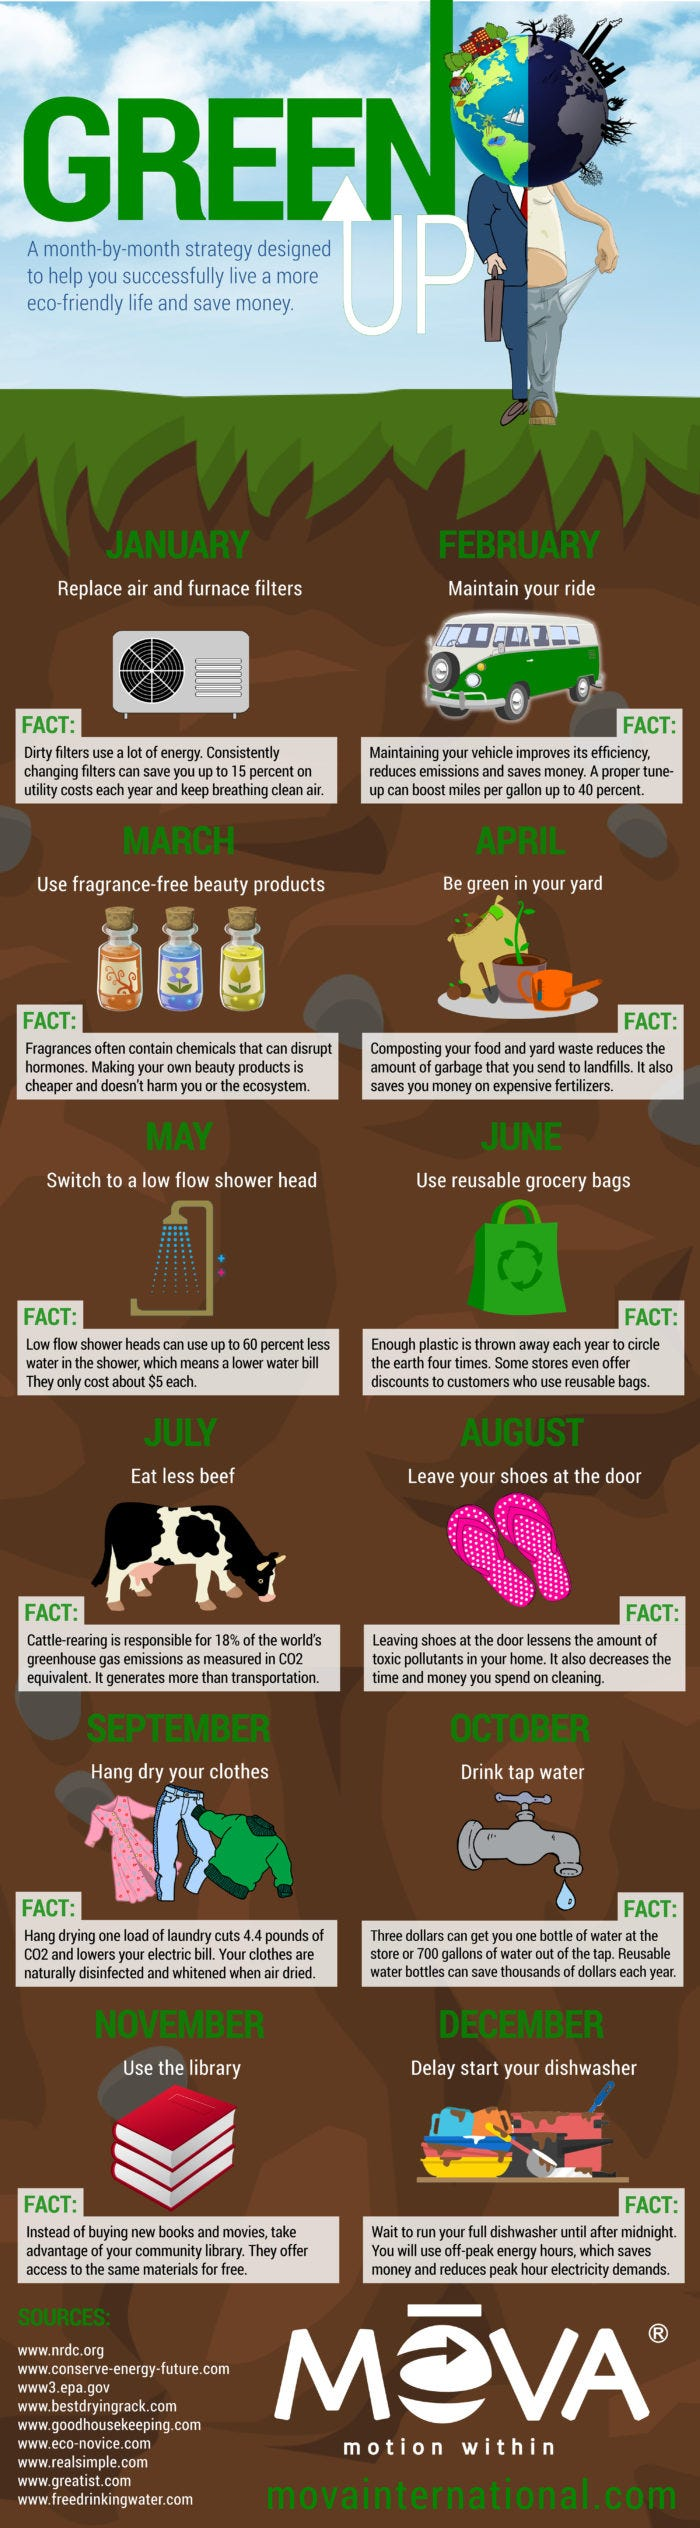 green living guide infographic